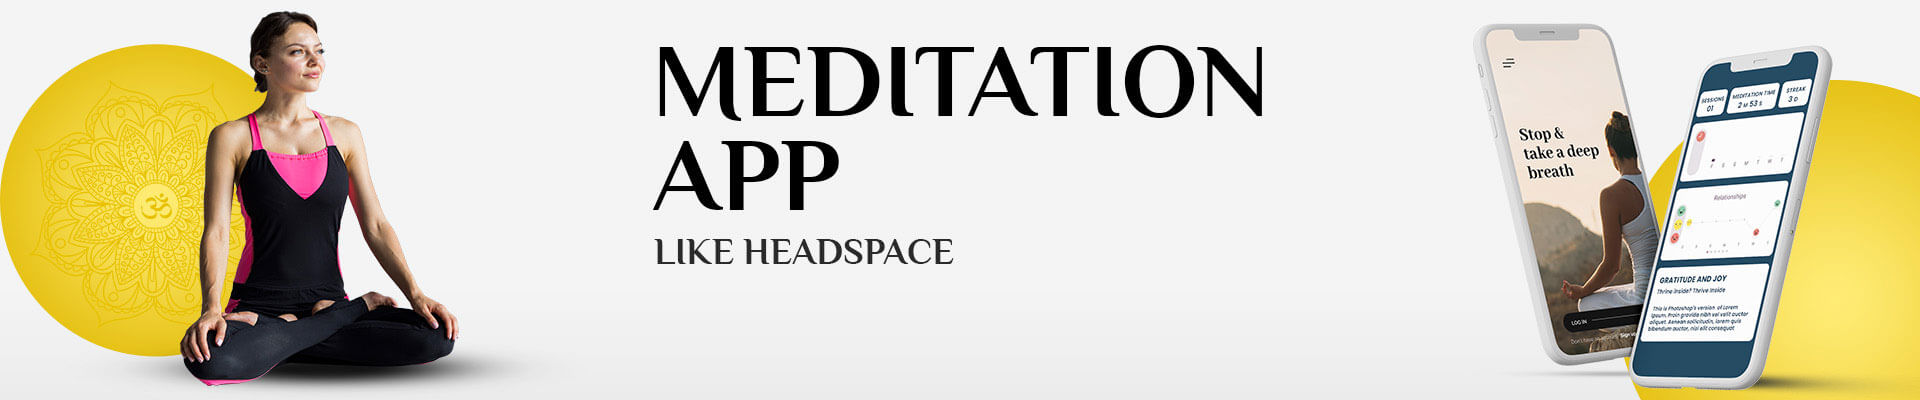 Top Guidelines to Create a Meditation App like Headspace